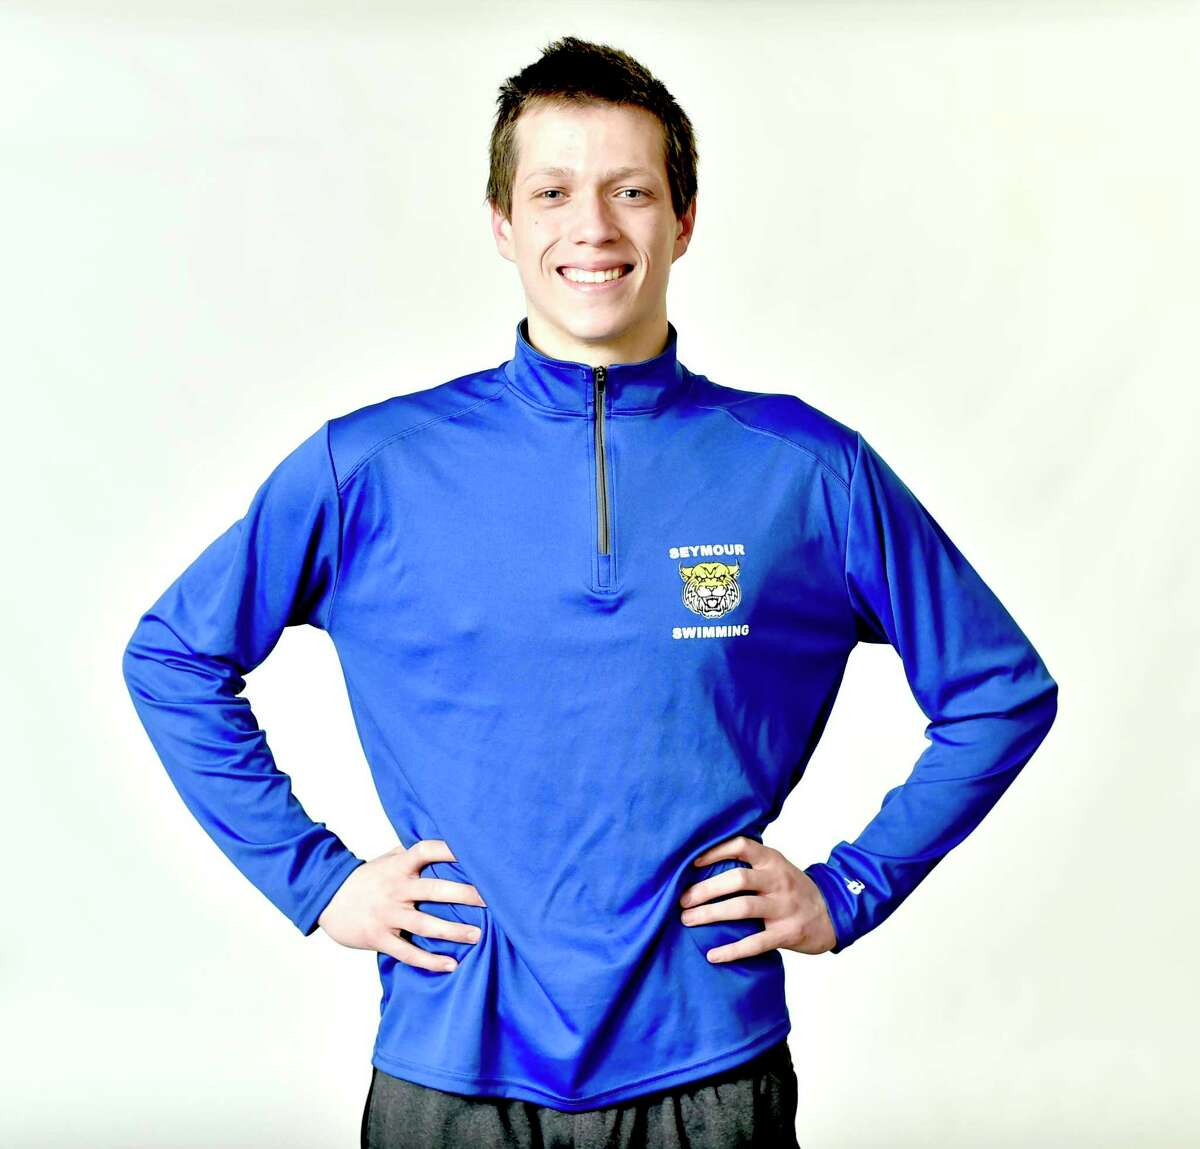 New Haven, Connecticut - Tuesday, March 26, 2019: WINTER ALL AREA PLUS - BOYS SWIMMING: Jack Crocamo, Seymour HS